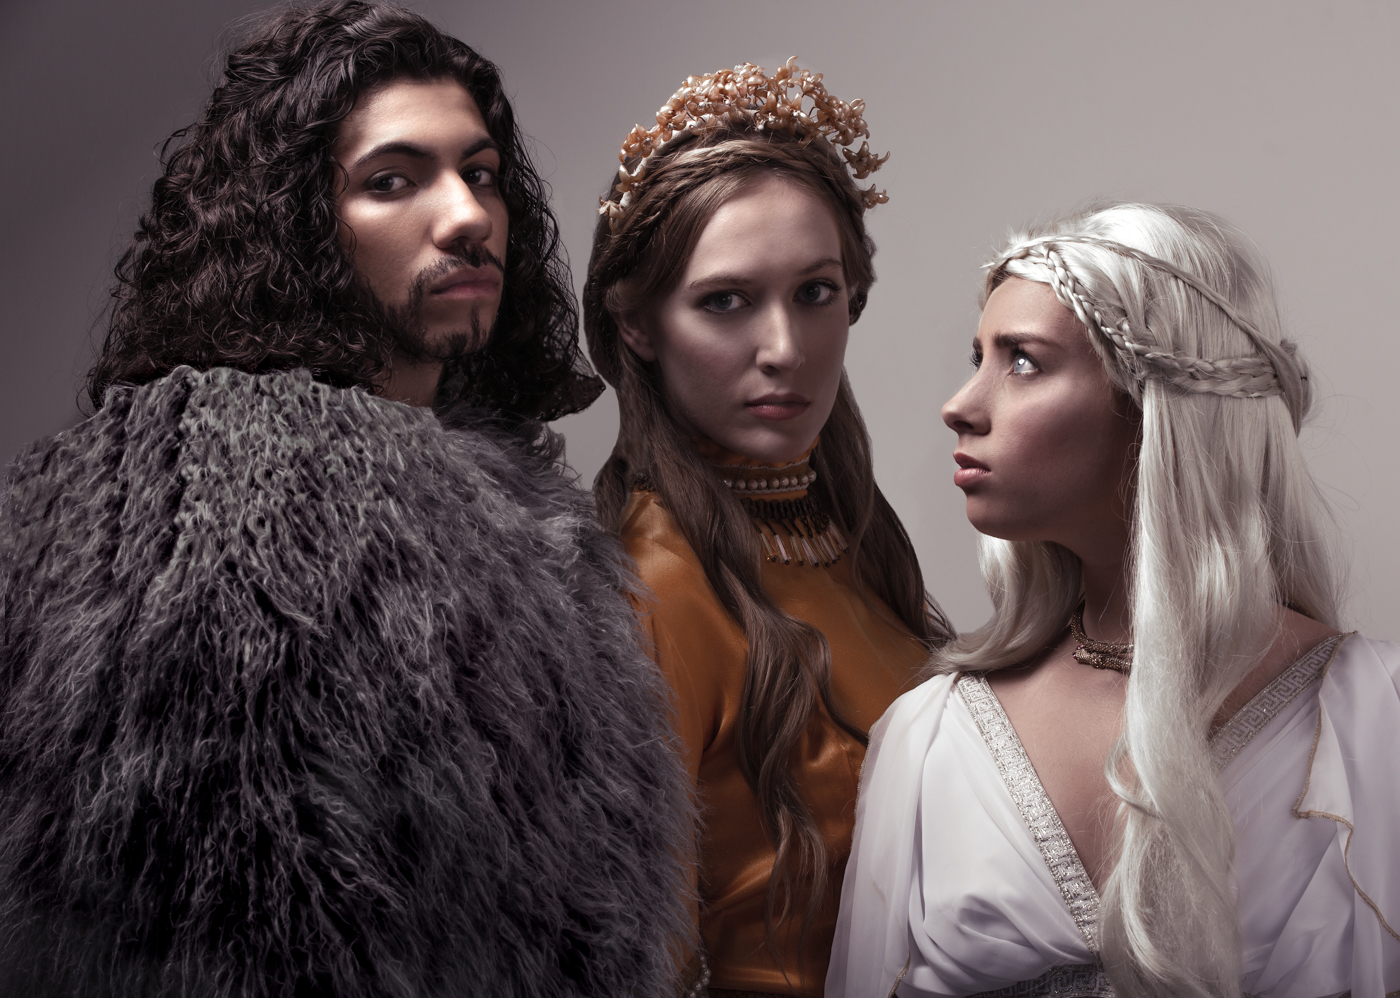 king-queen-costume-game-of-thrones-orlando-portrait.jpeg